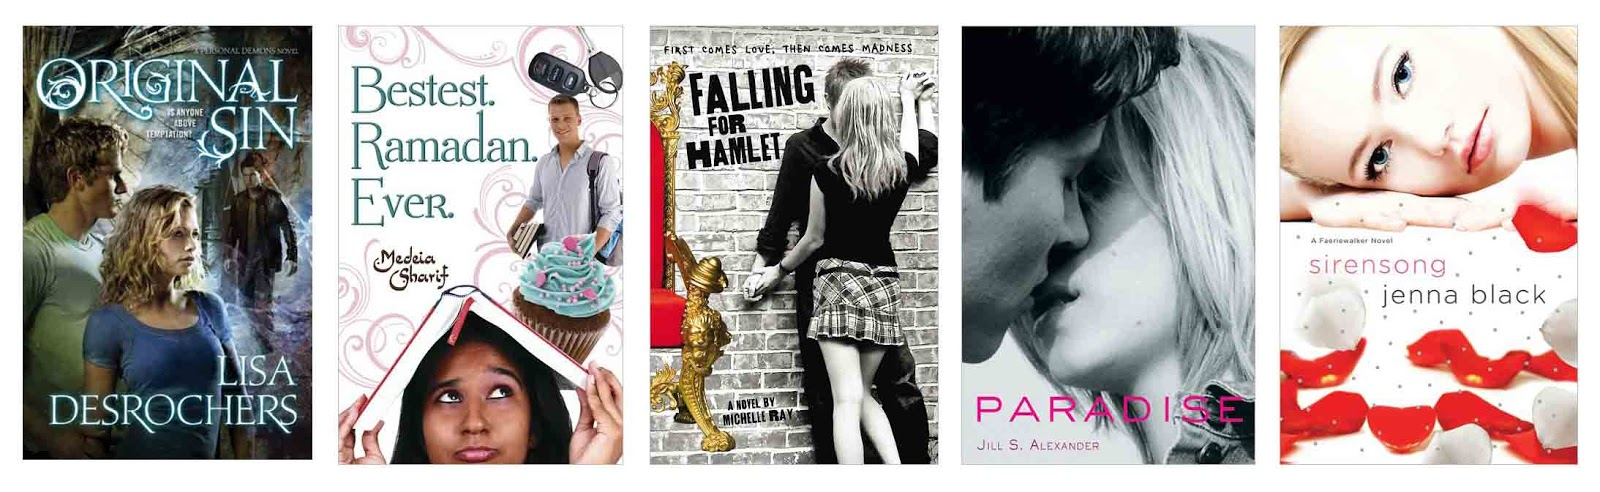 New Reads: July 3-9, 2011